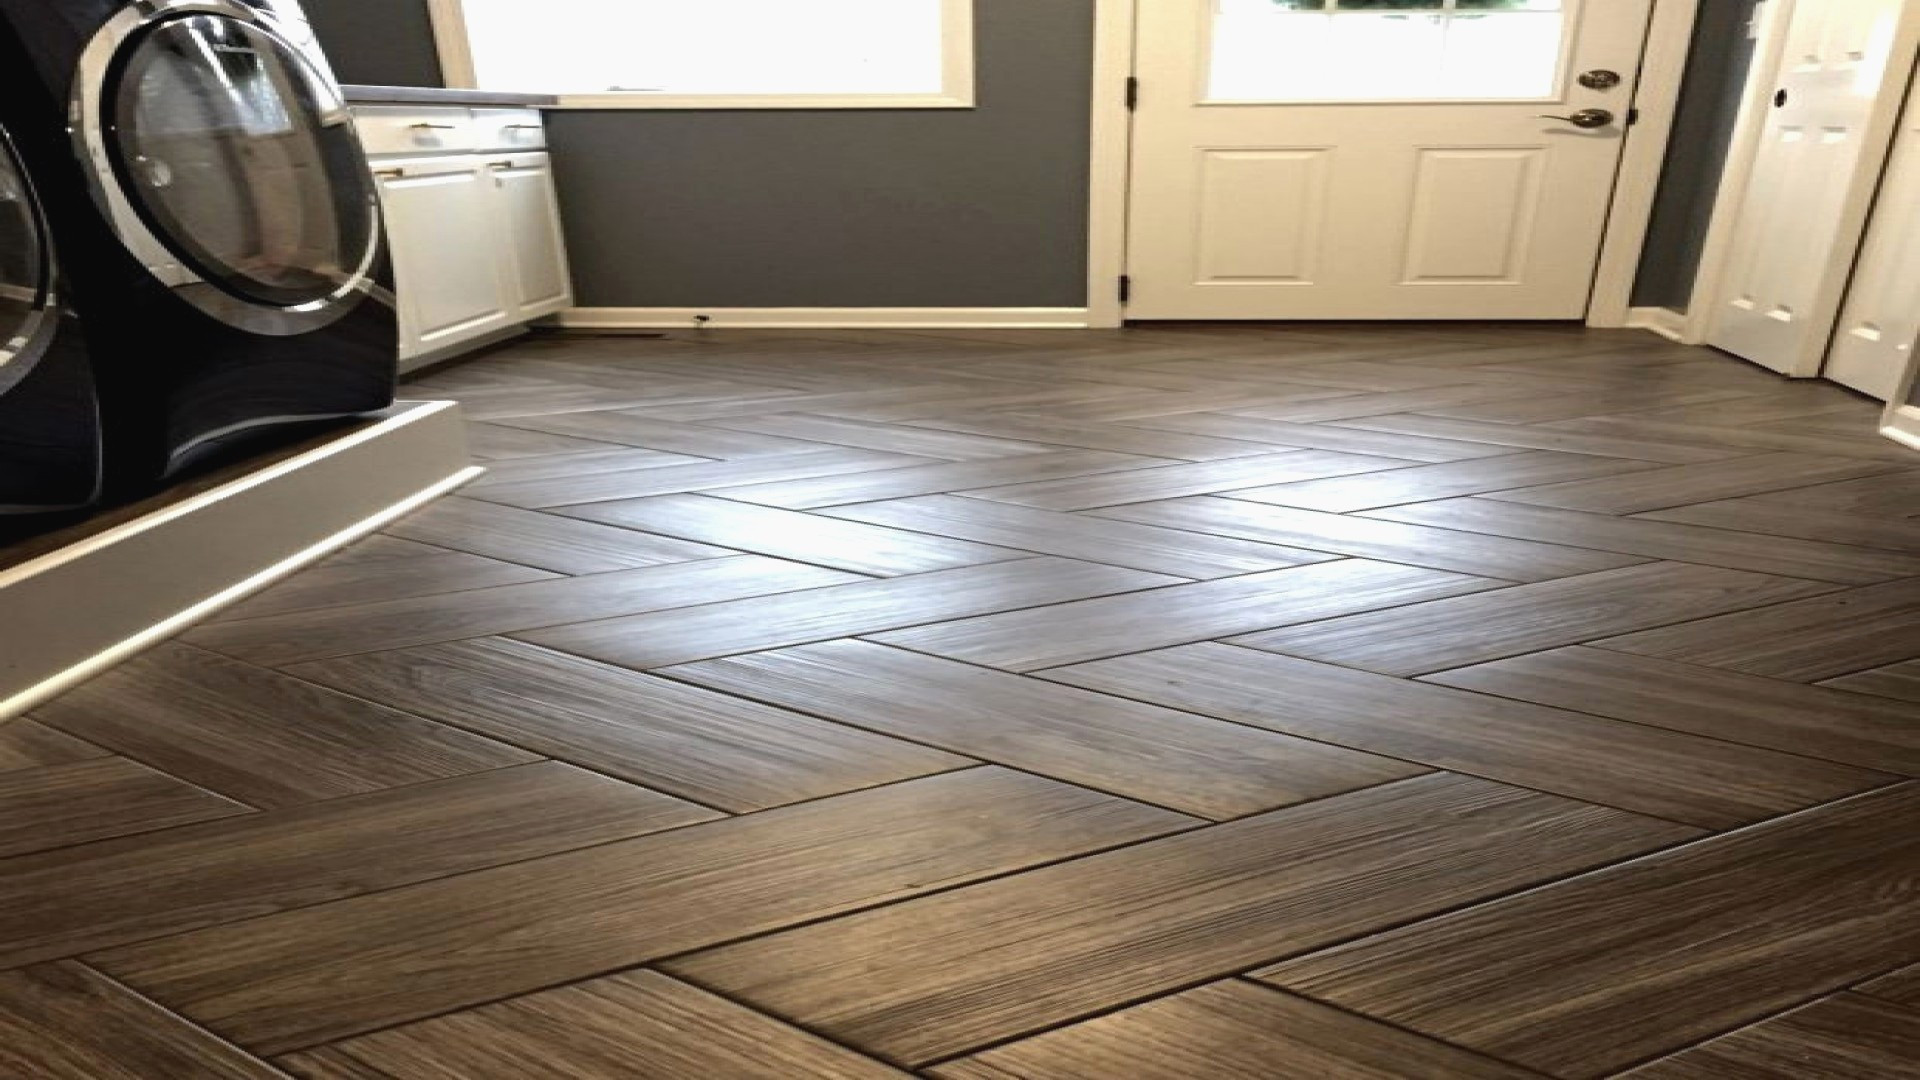 discount hardwood flooring louisville ky of dahuacctvth com page 52 of 75 flooring decoration ideas page 52 with regard to hardwood flooring home depot